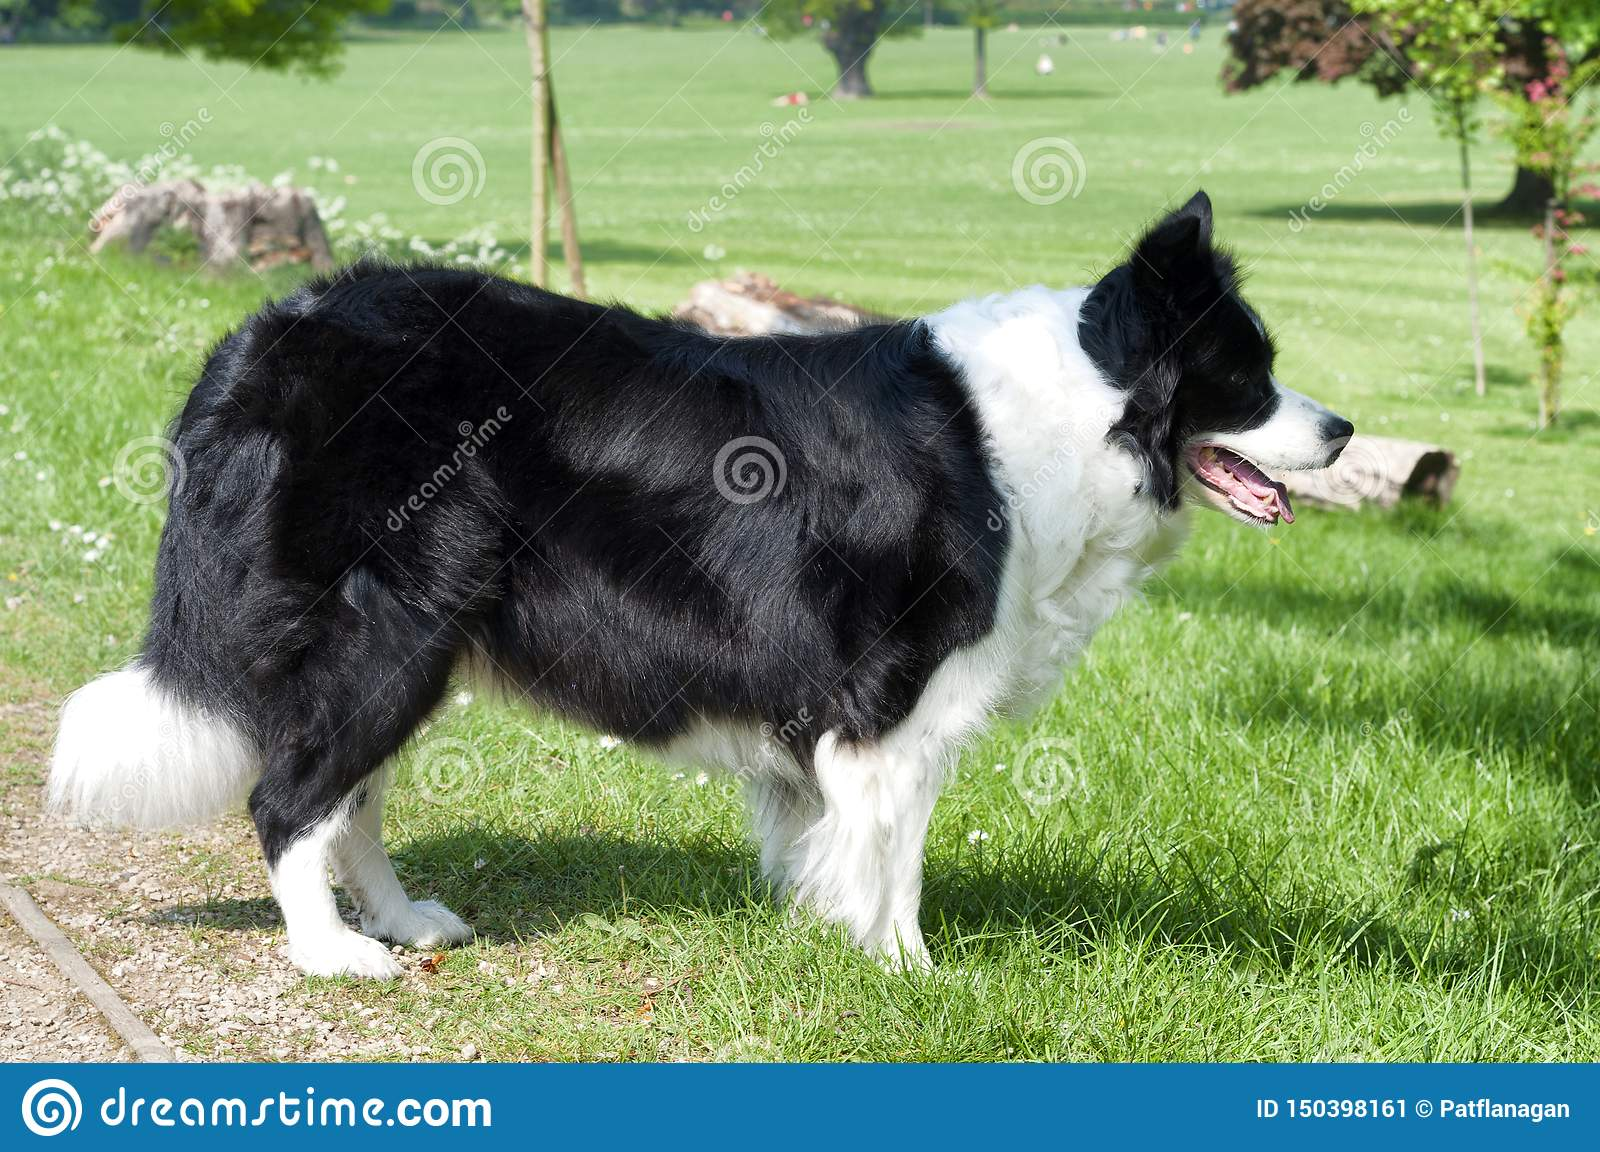 A border collie dog in a green field